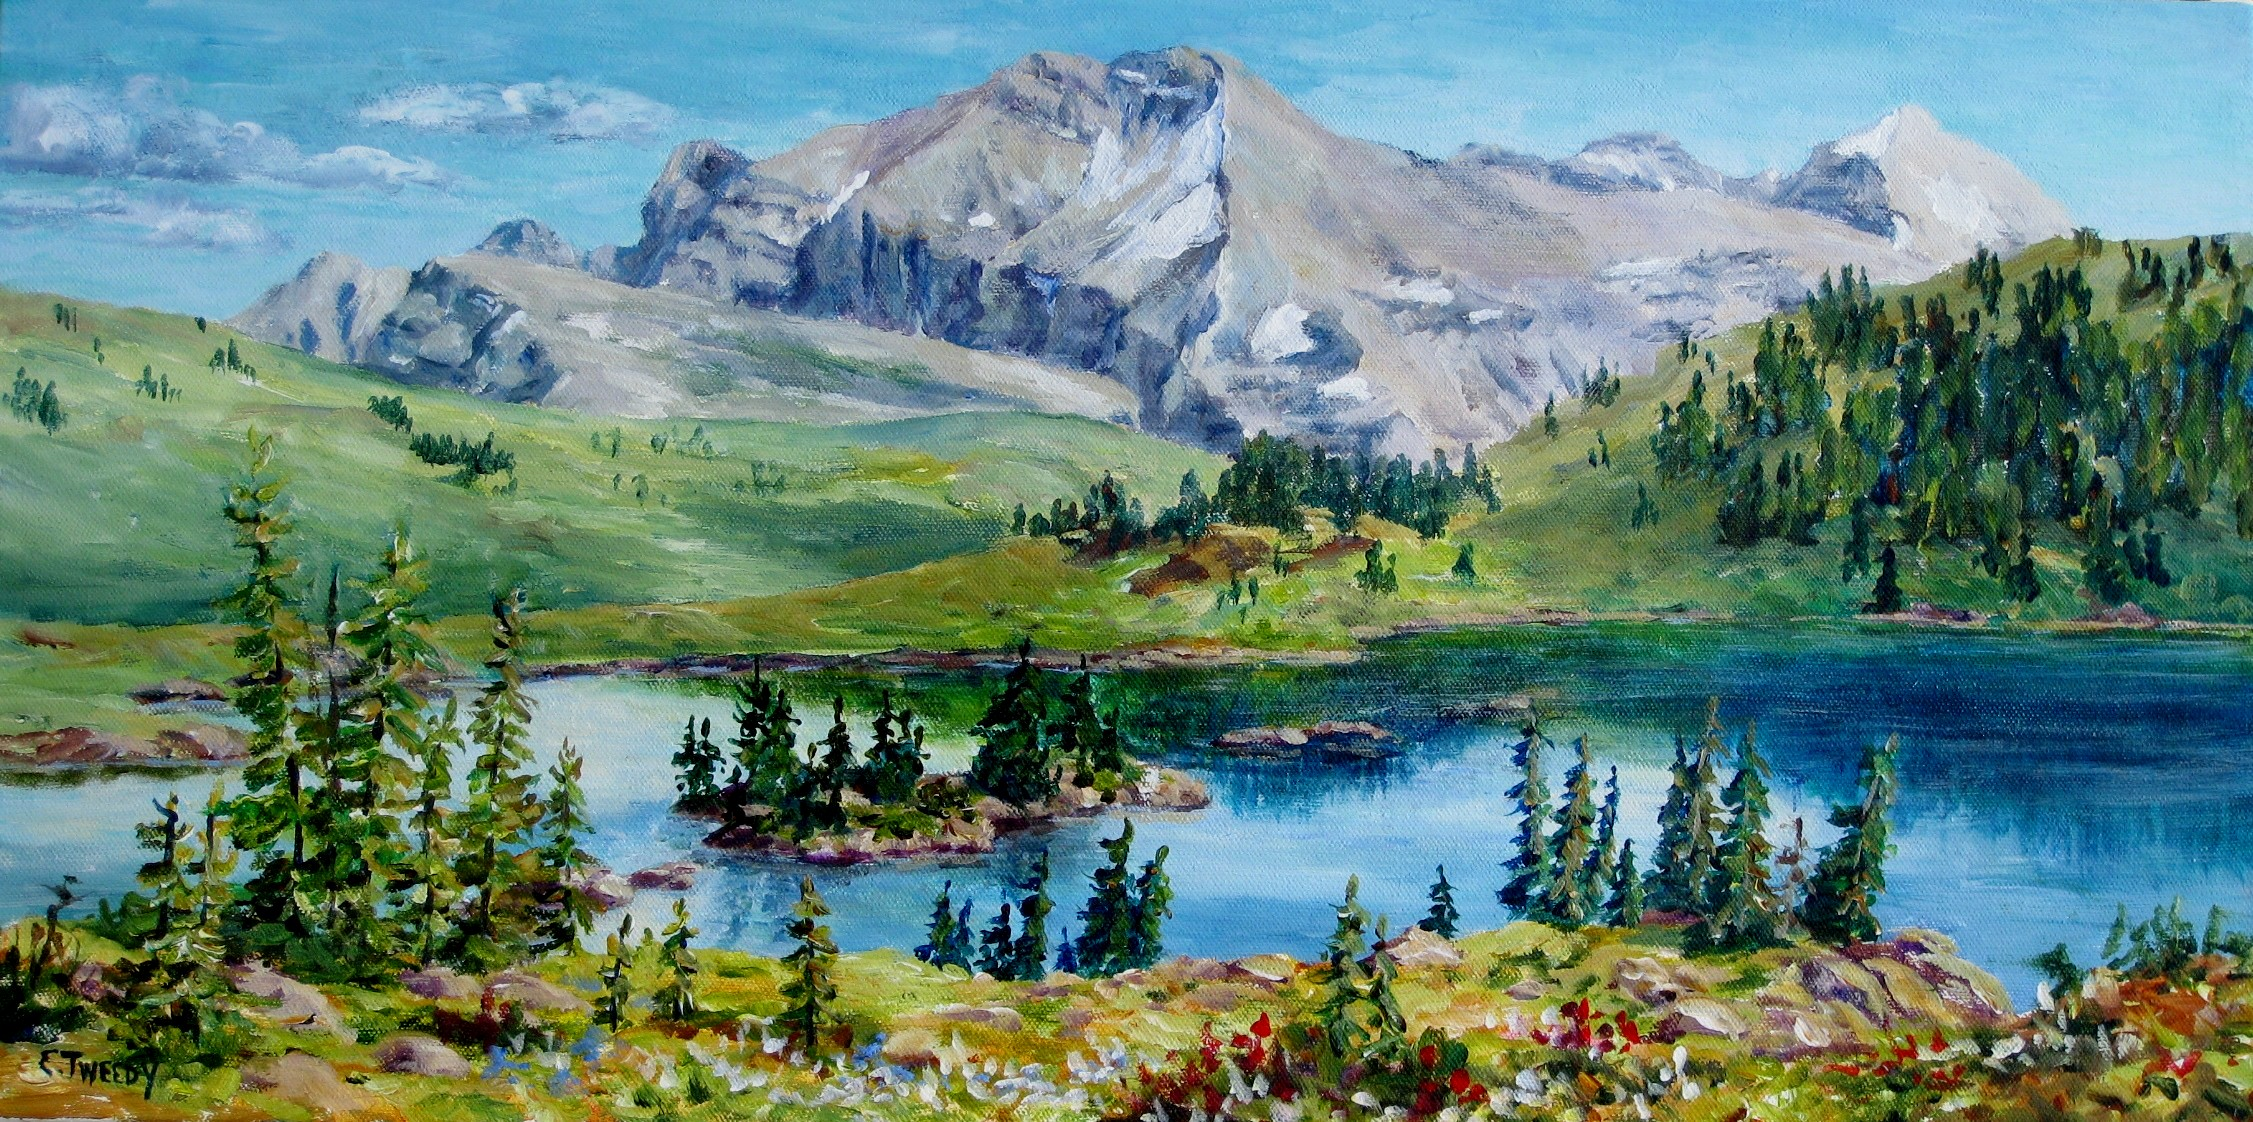 Elaine Tweedy - Rock Isle Lake, Across the Great Divide (SOLD)